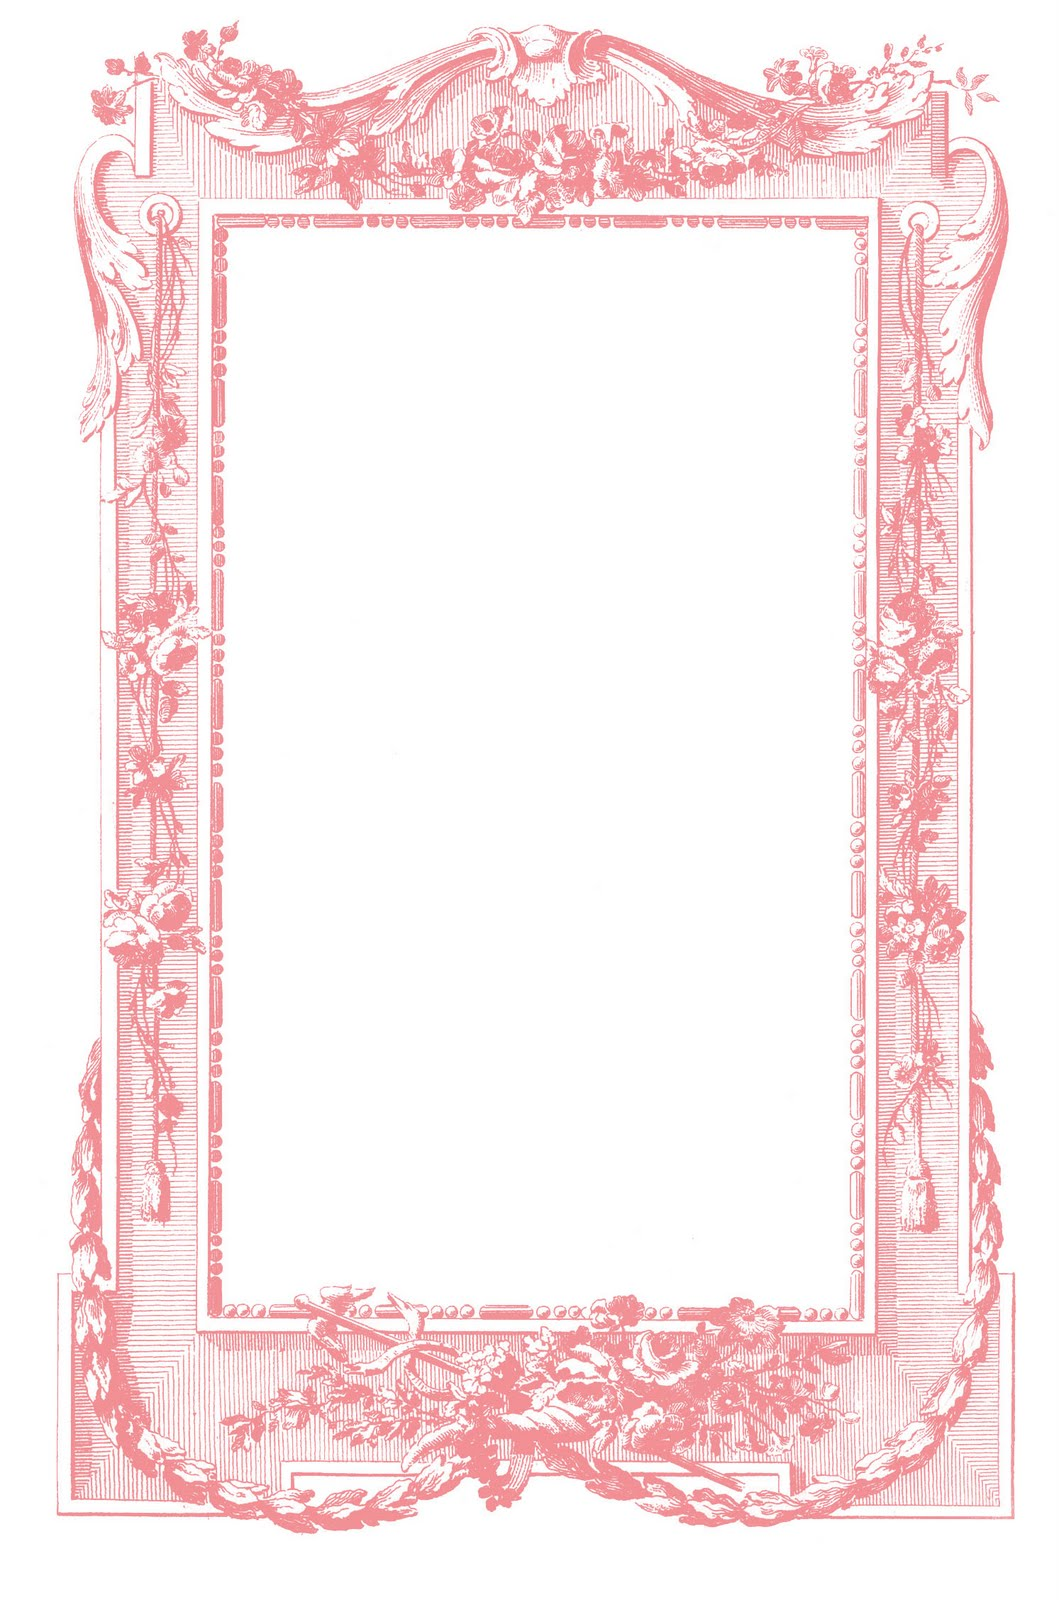 Glasses Frame In French : Antique Images - Fabulous French Graphic Frames - The ...